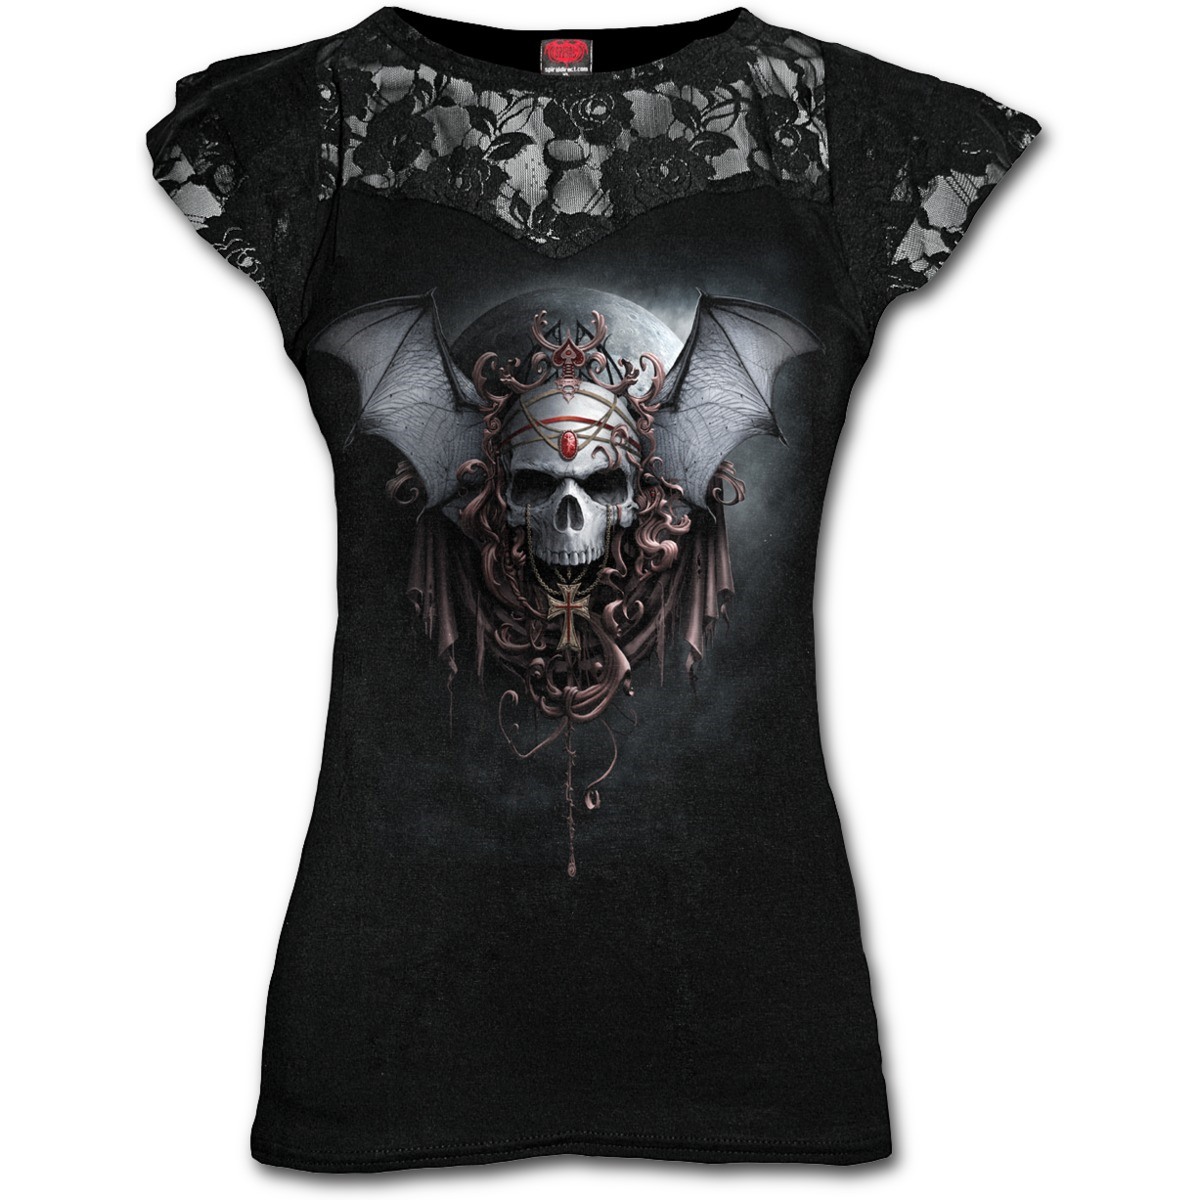 SPIRAL-DIRECT-Ladies-Black-Gothic-GOTH-NIGHTS-Skull-Top-Lace-Bat-All-Sizes thumbnail 9